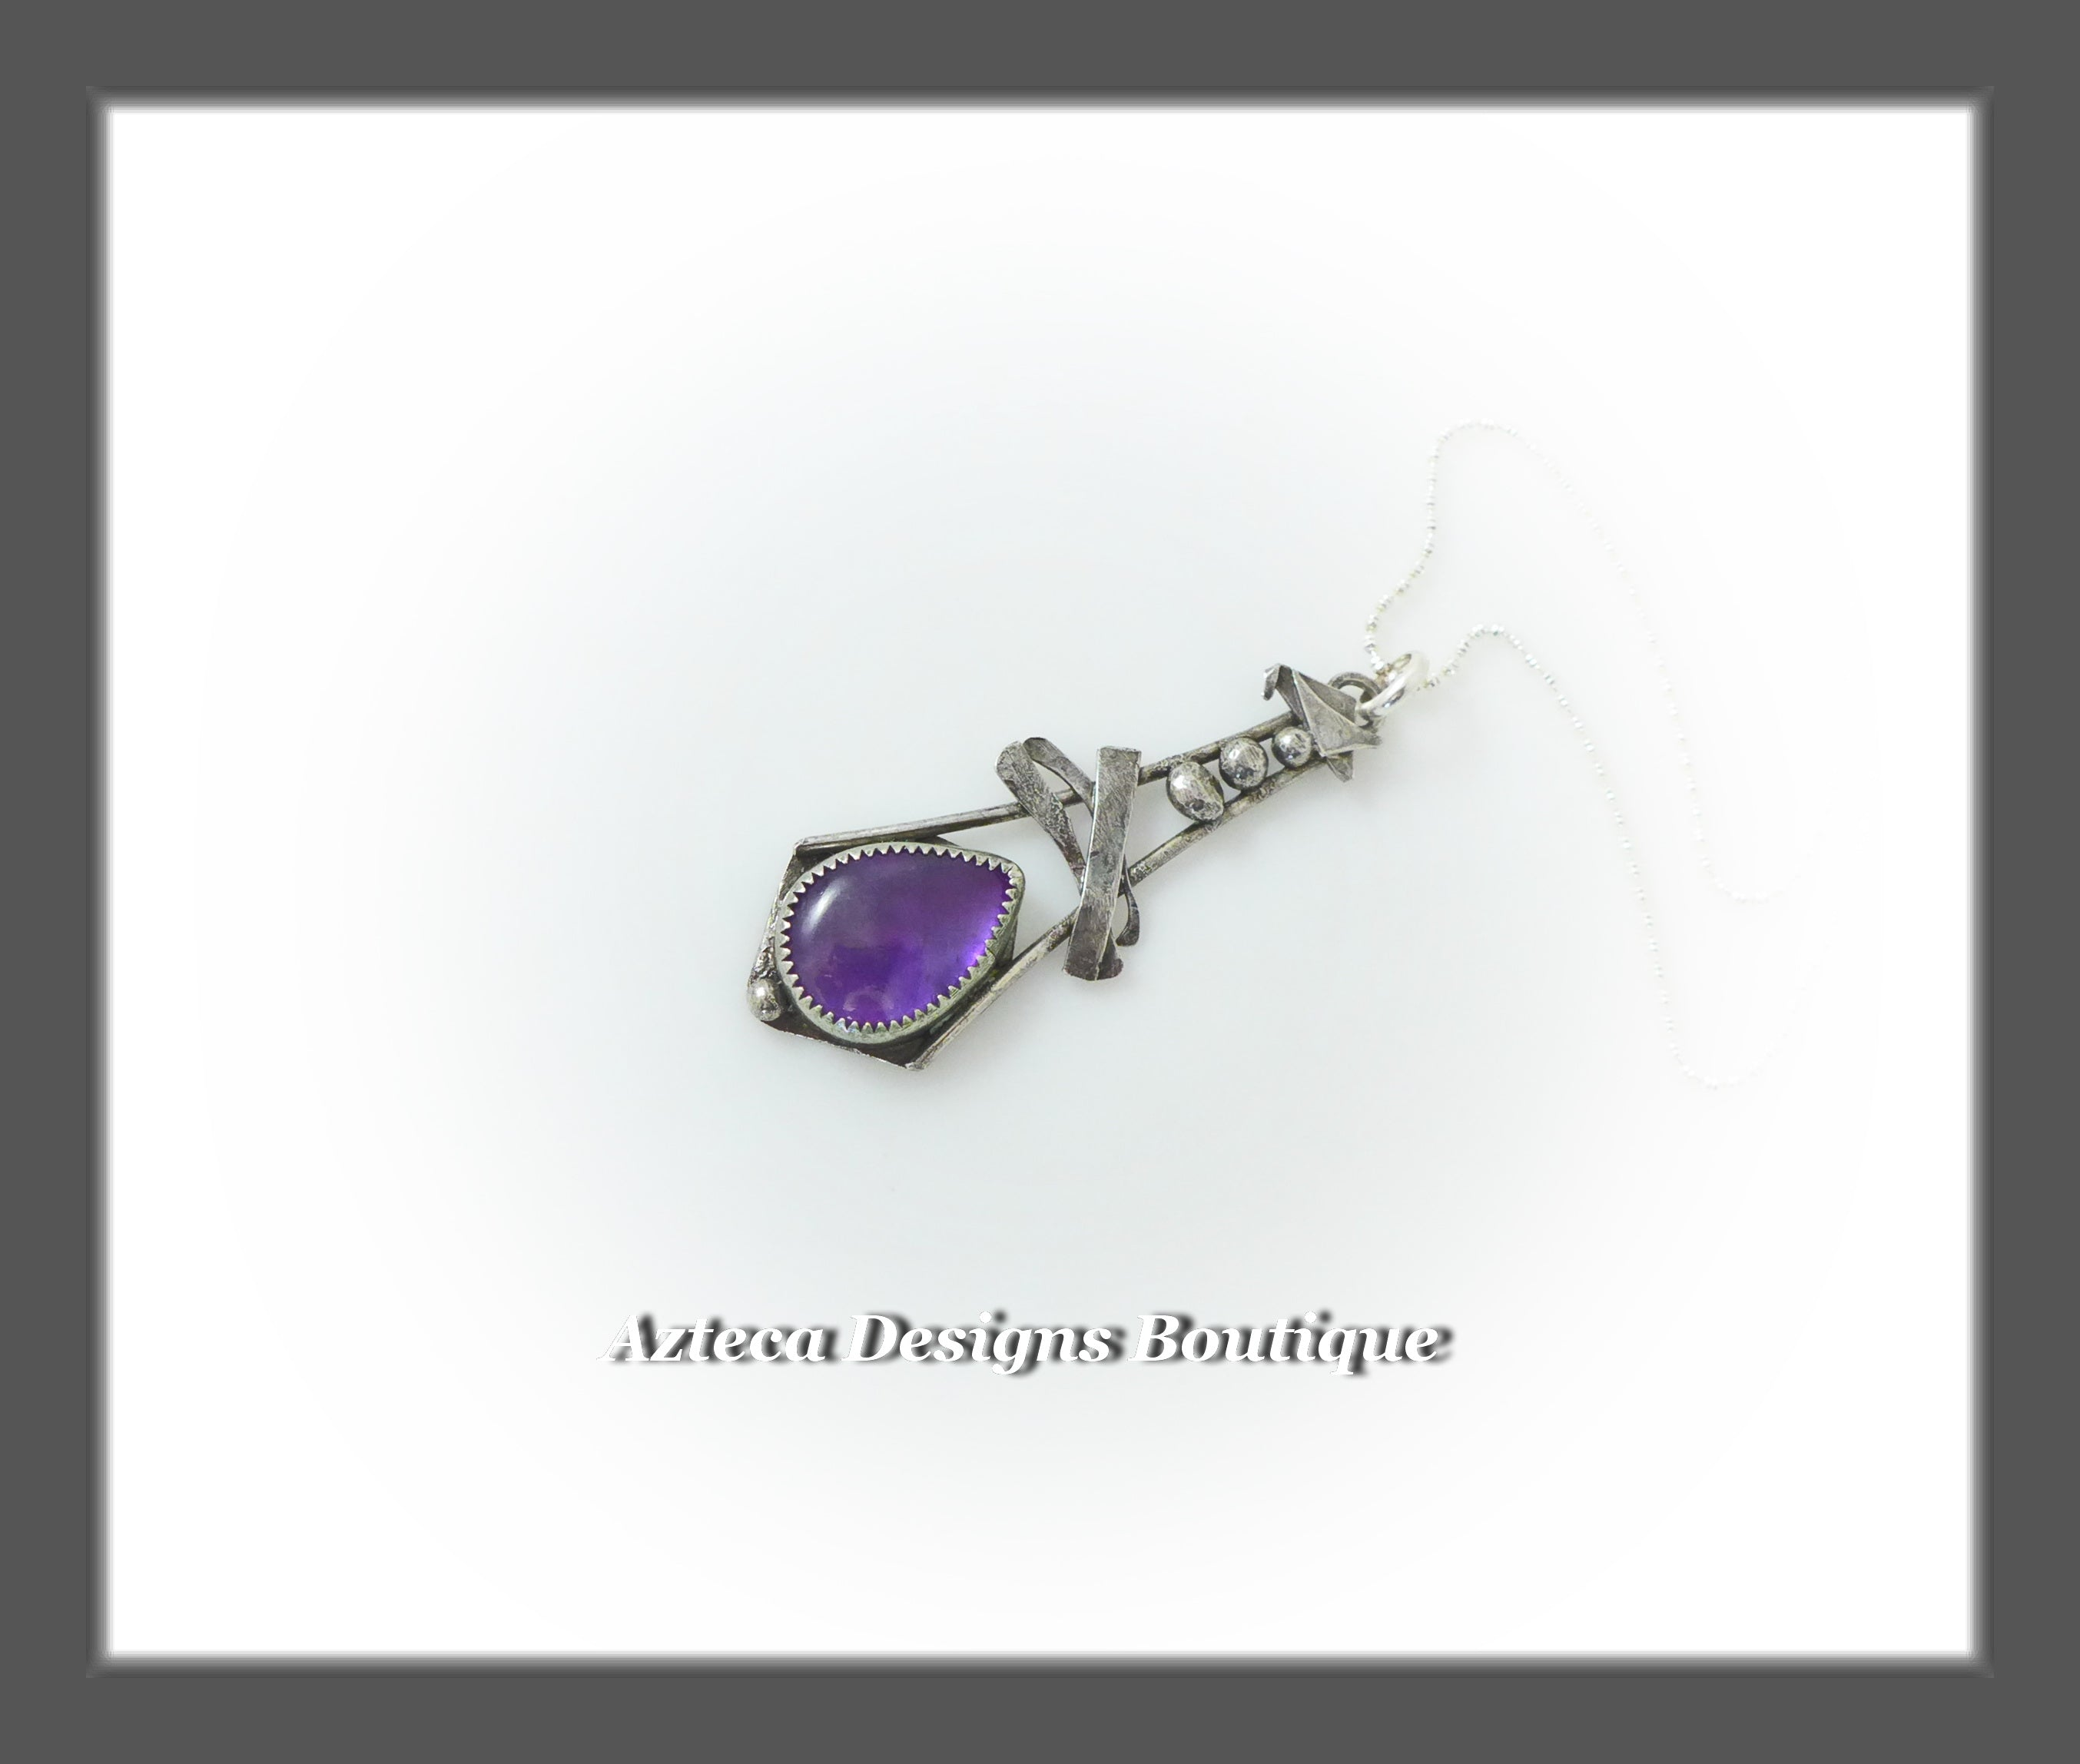 Amethyst + Argentium Silver + Hand Fabricated Pendant Necklace